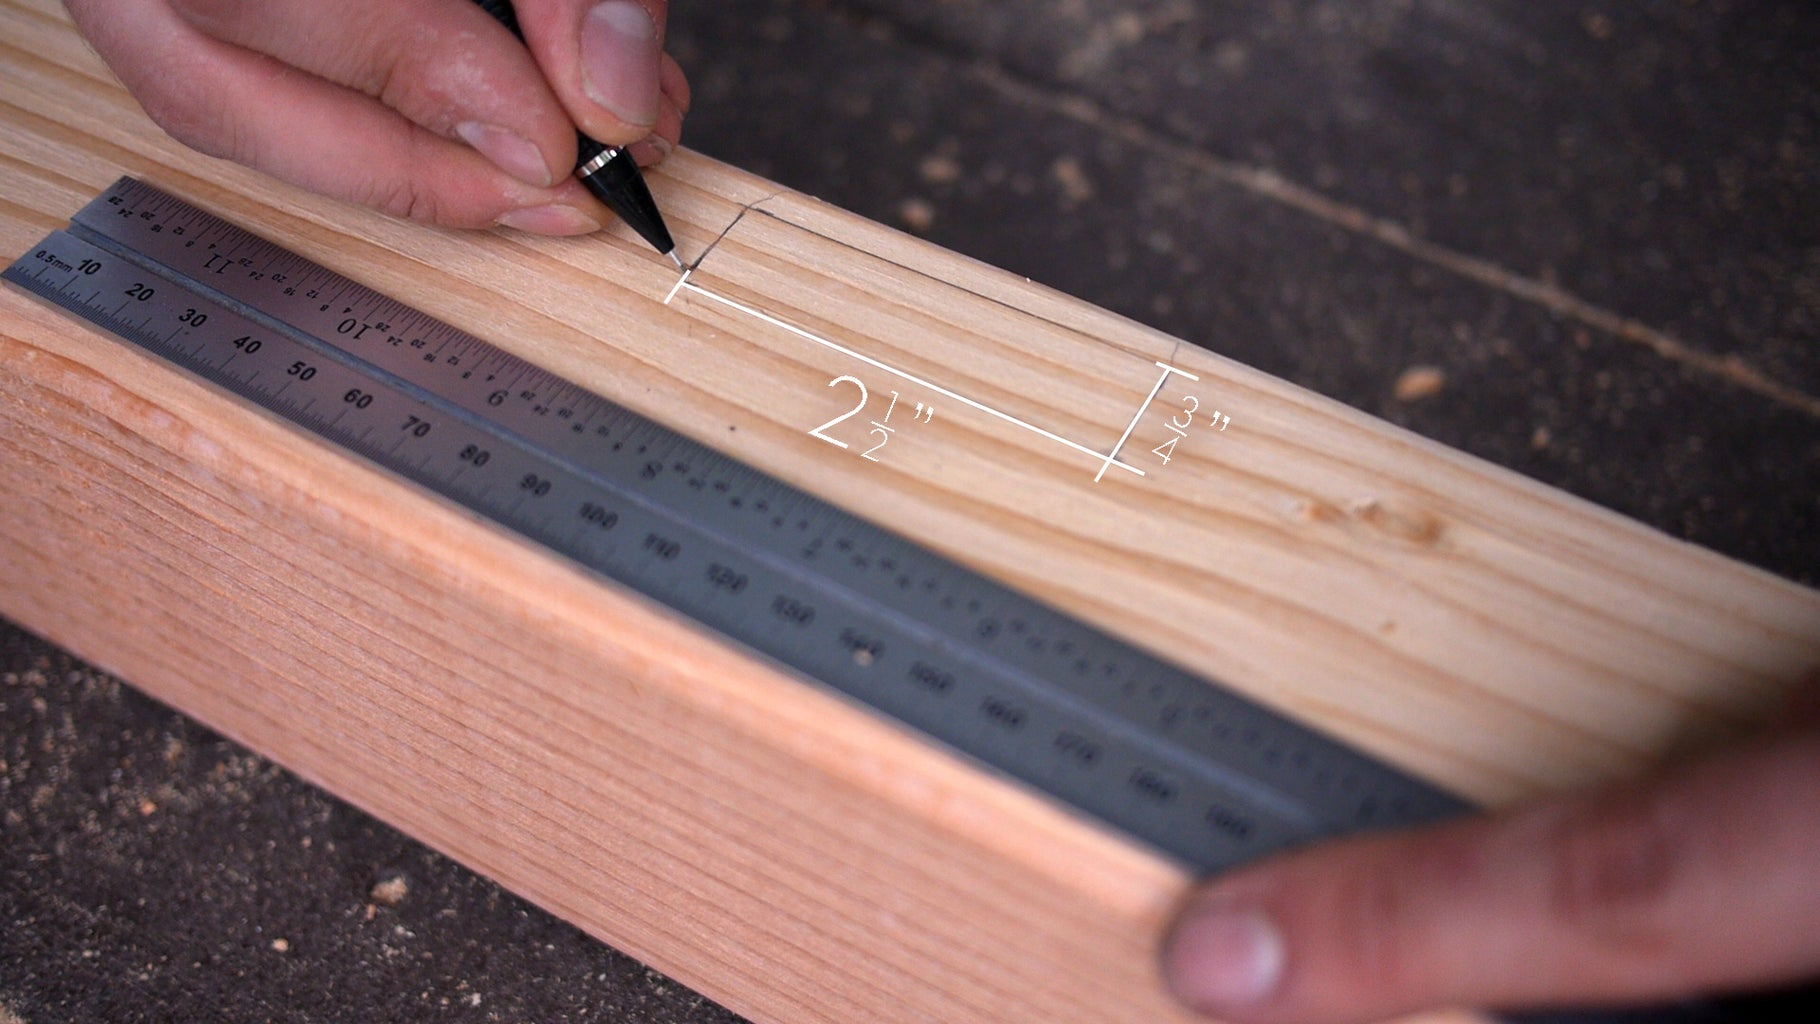 Mortise the 4x4's